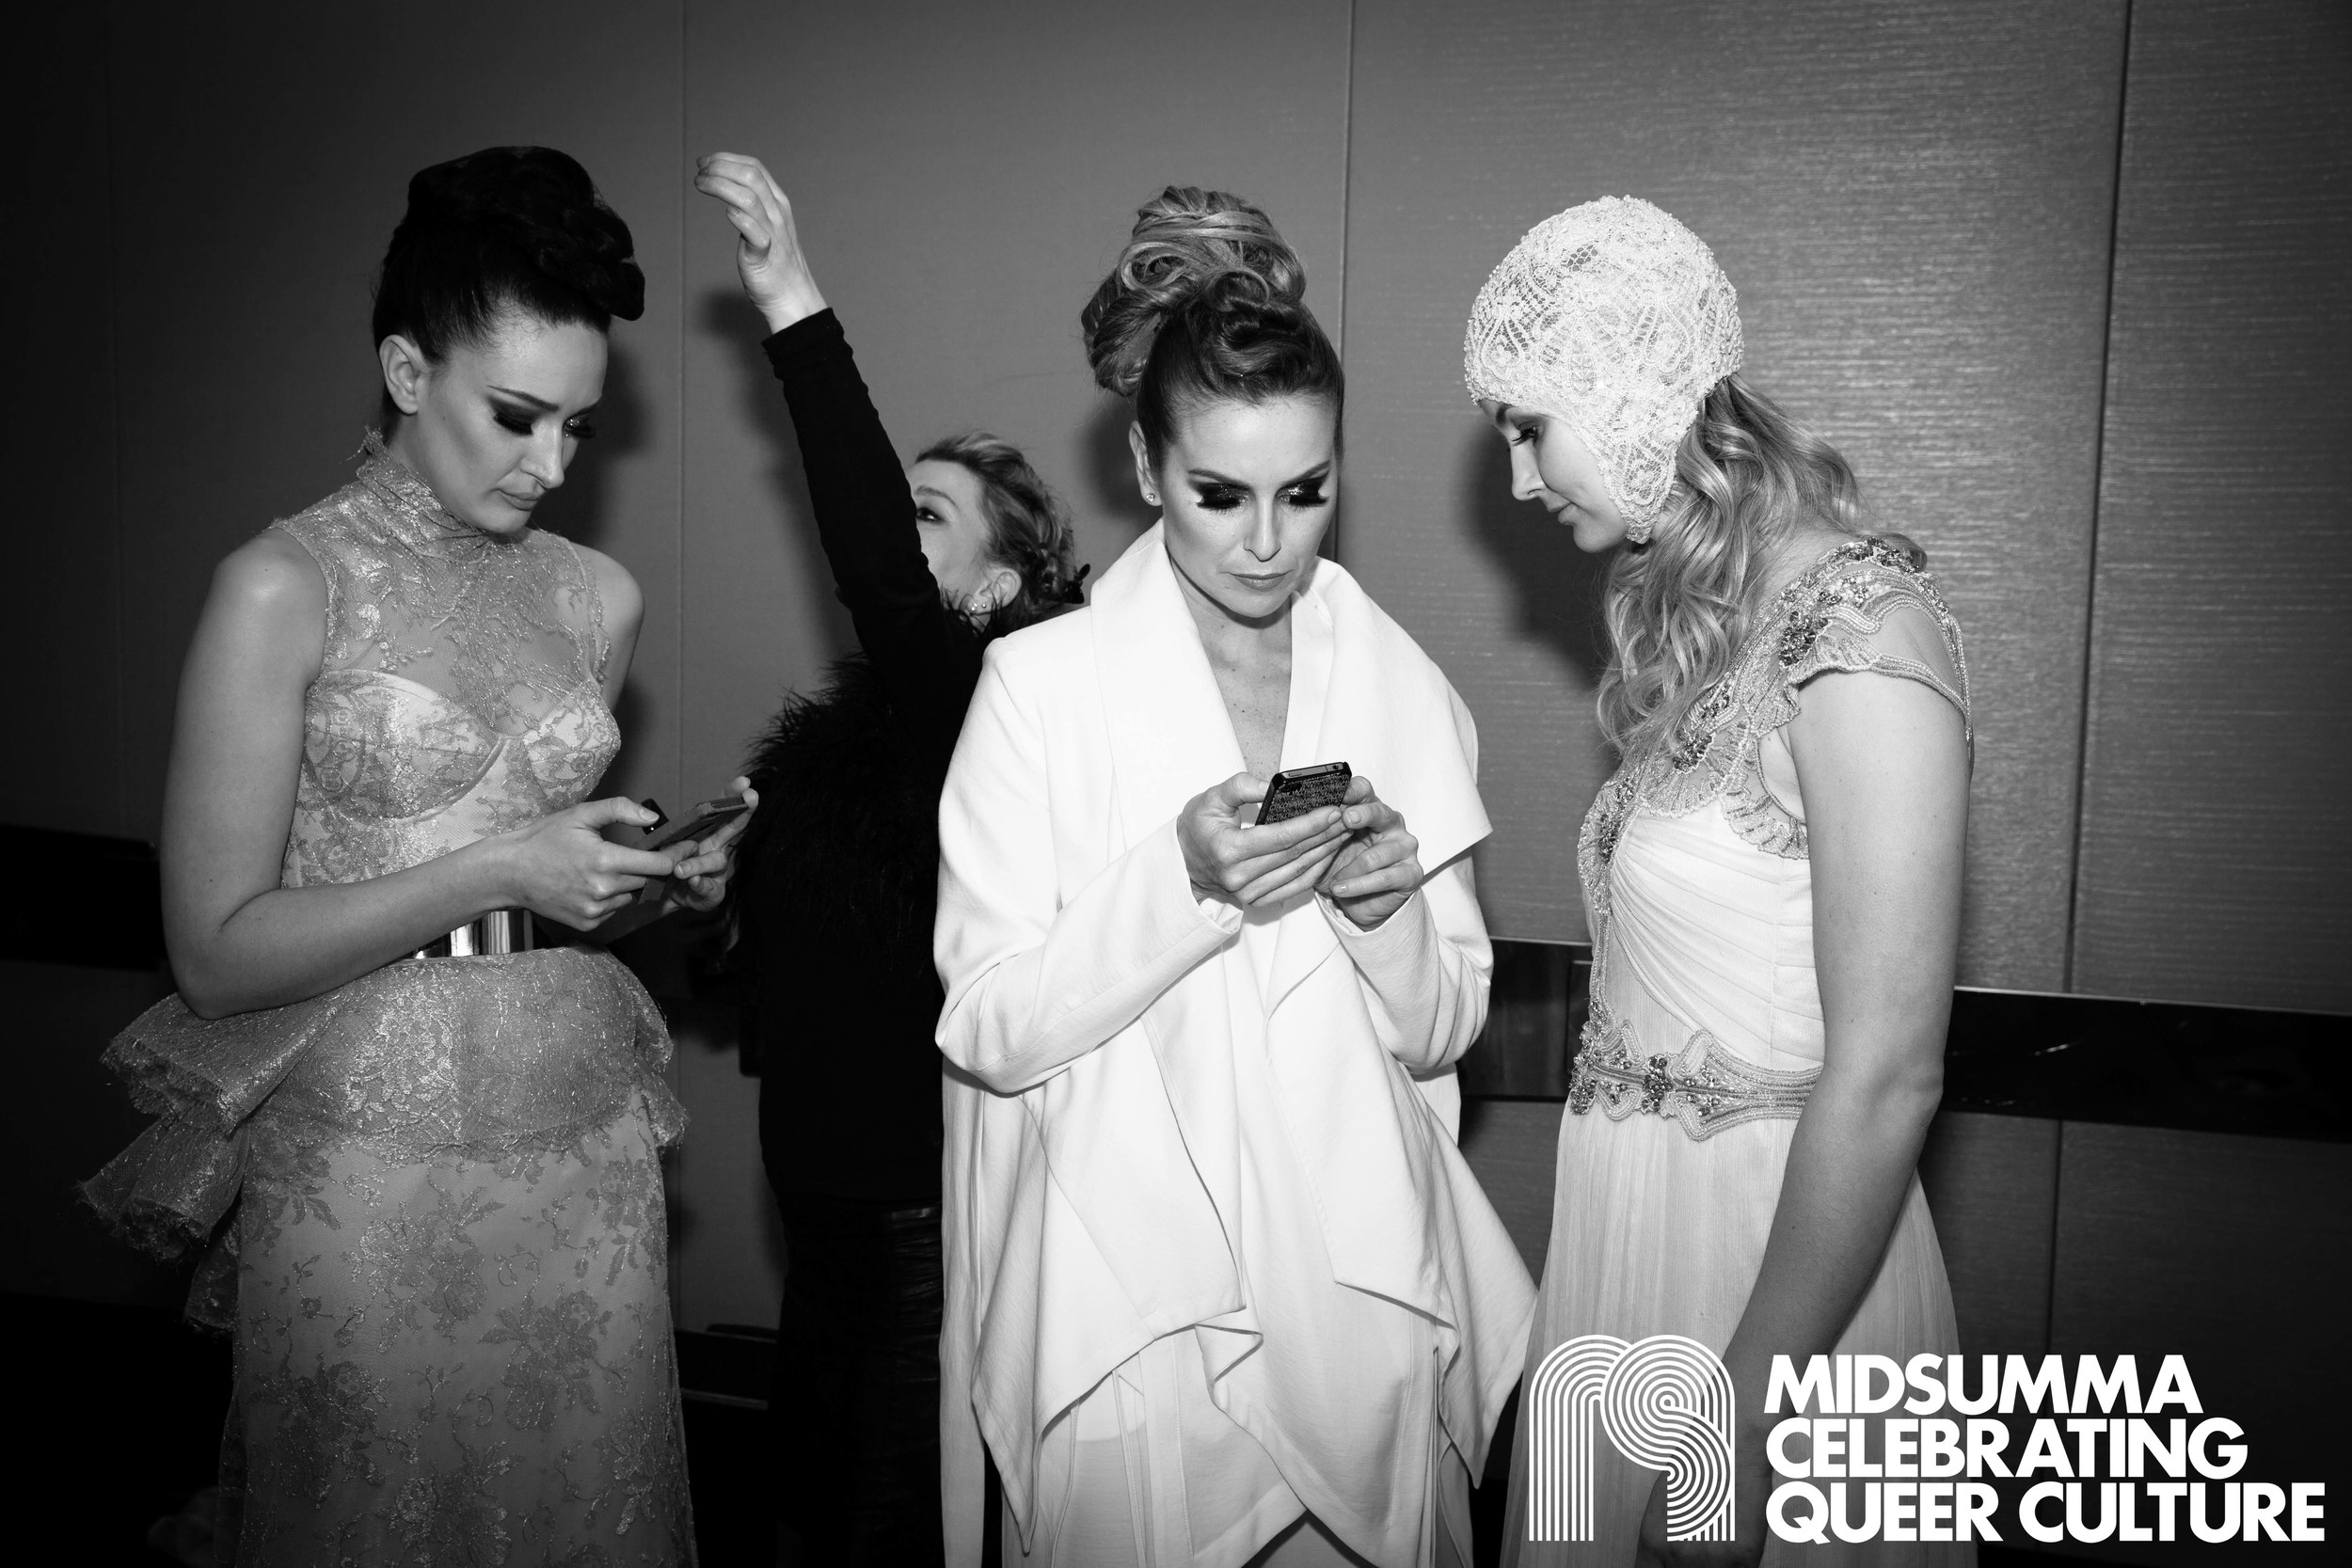 girls backstage.jpg